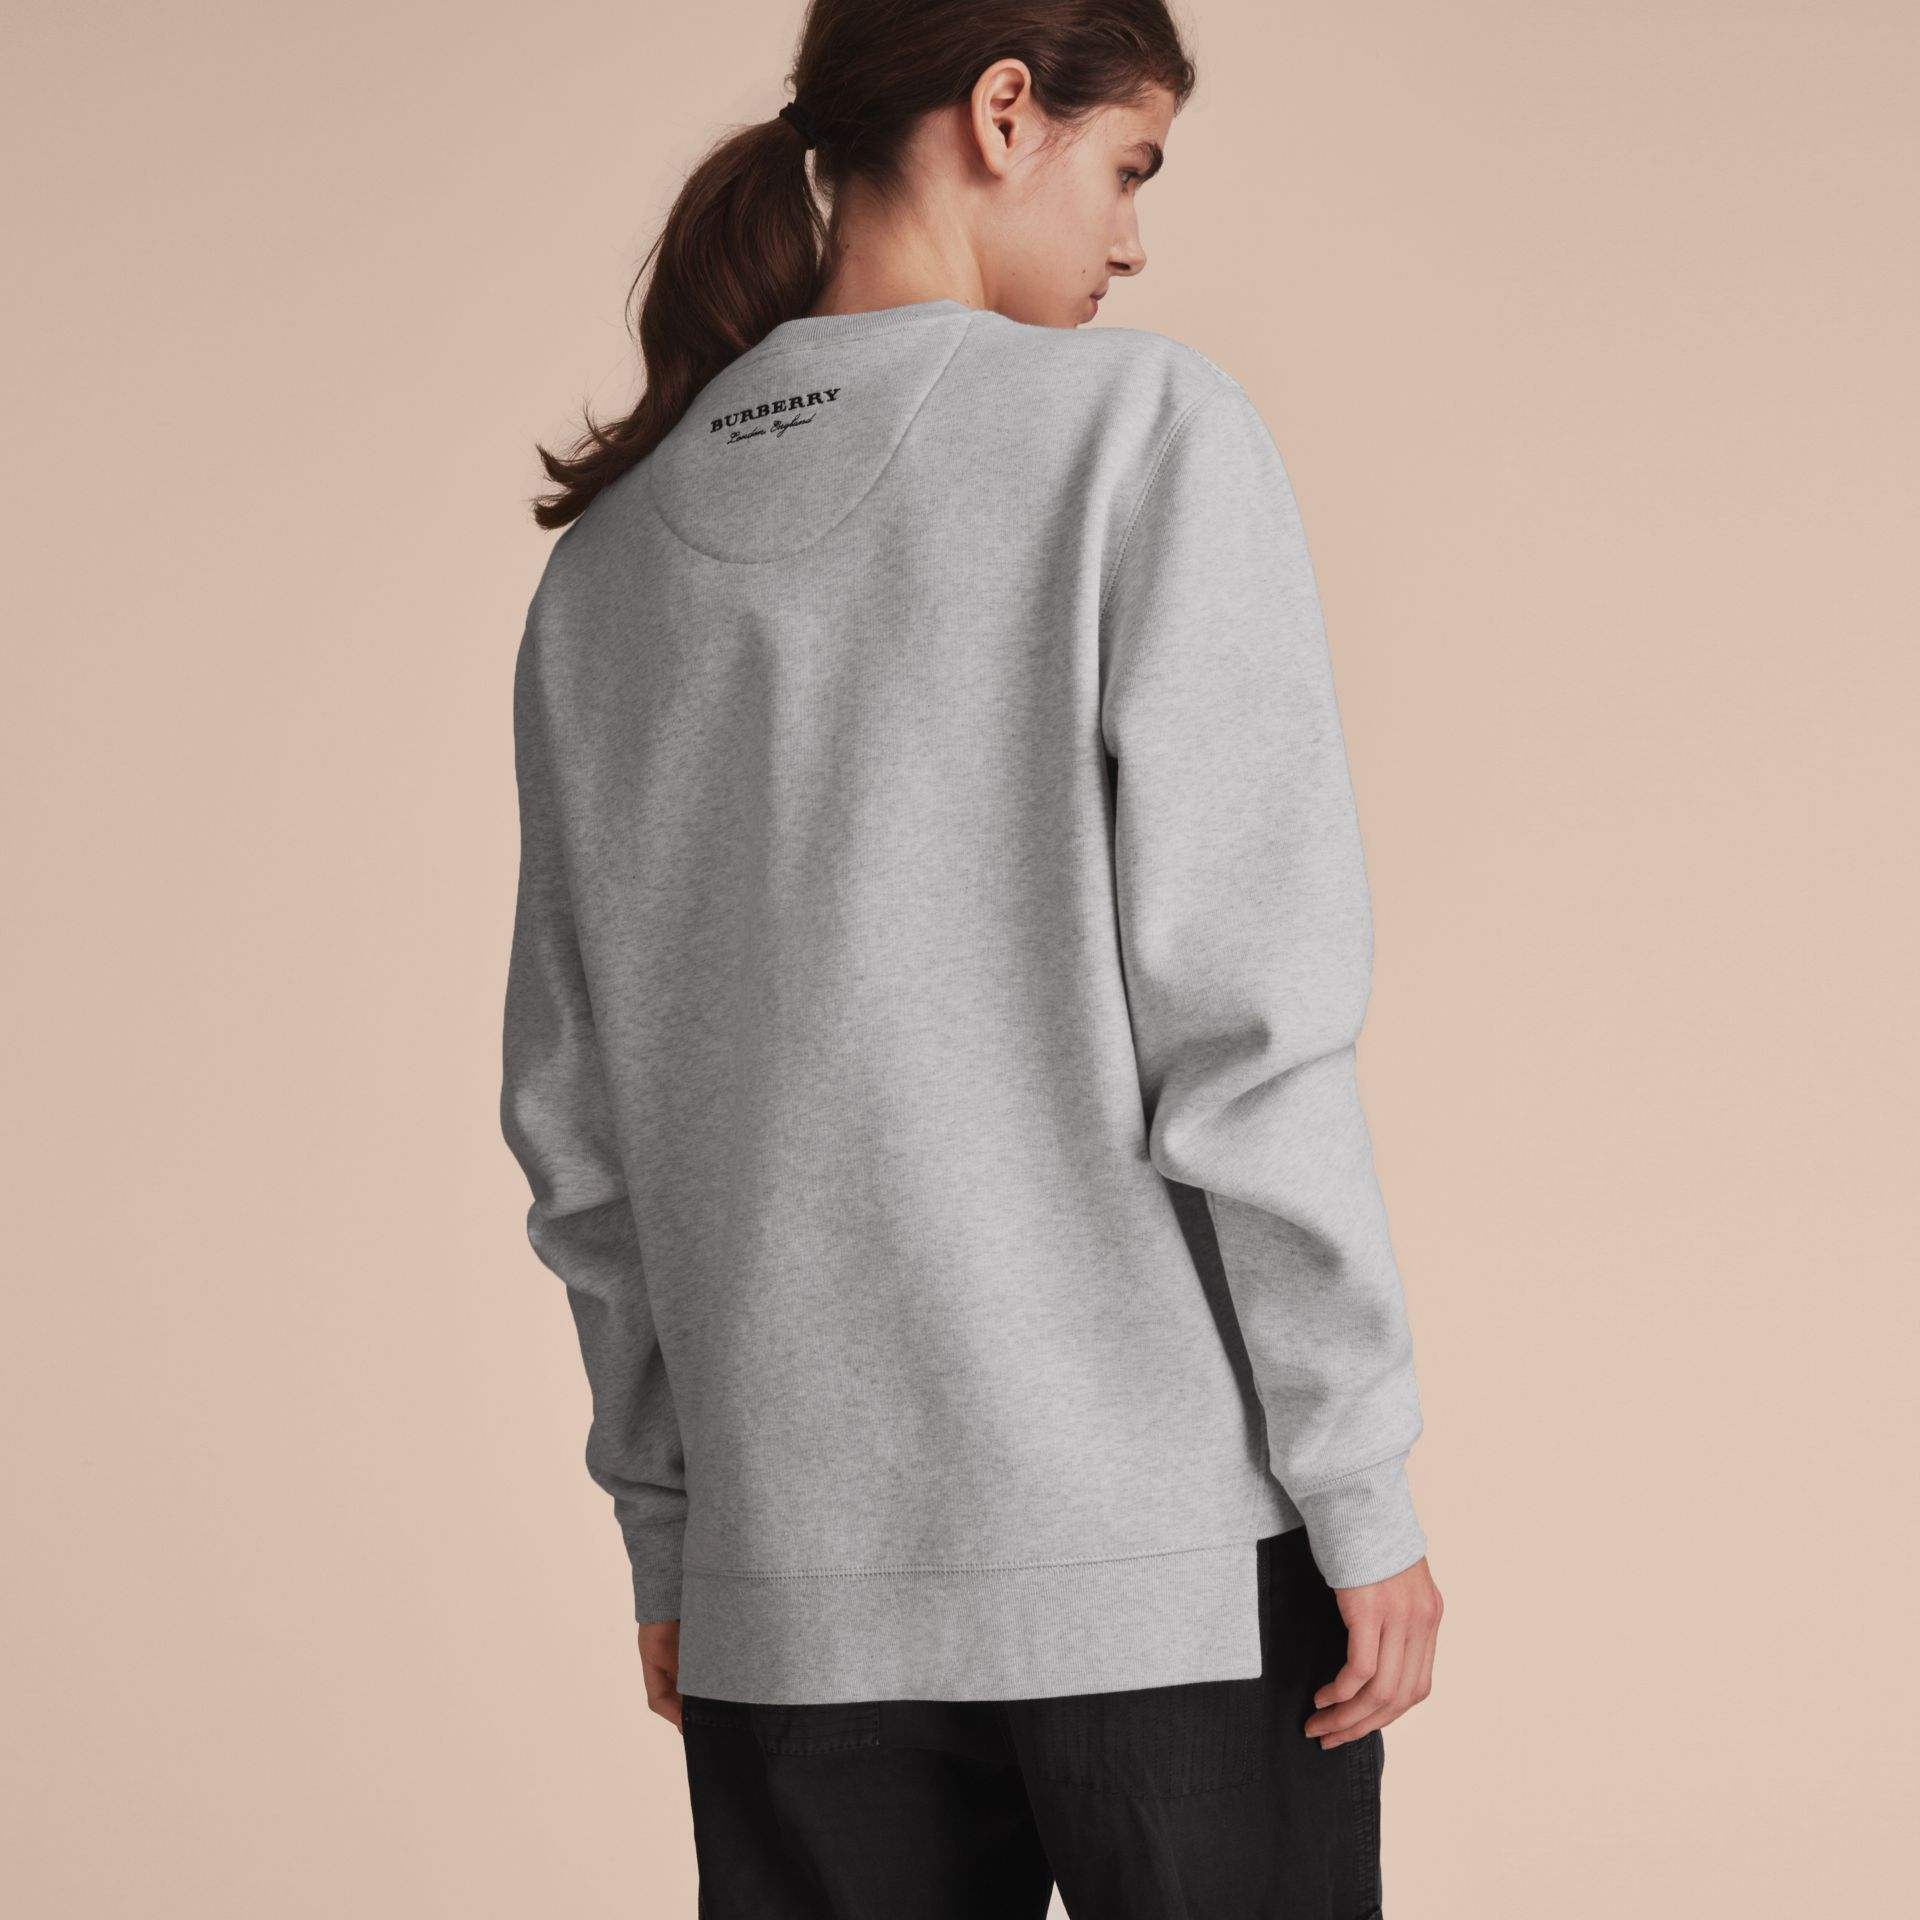 Unisex Lace Cutwork Sweatshirt in Light Grey Melange - Women | Burberry Singapore - gallery image 5